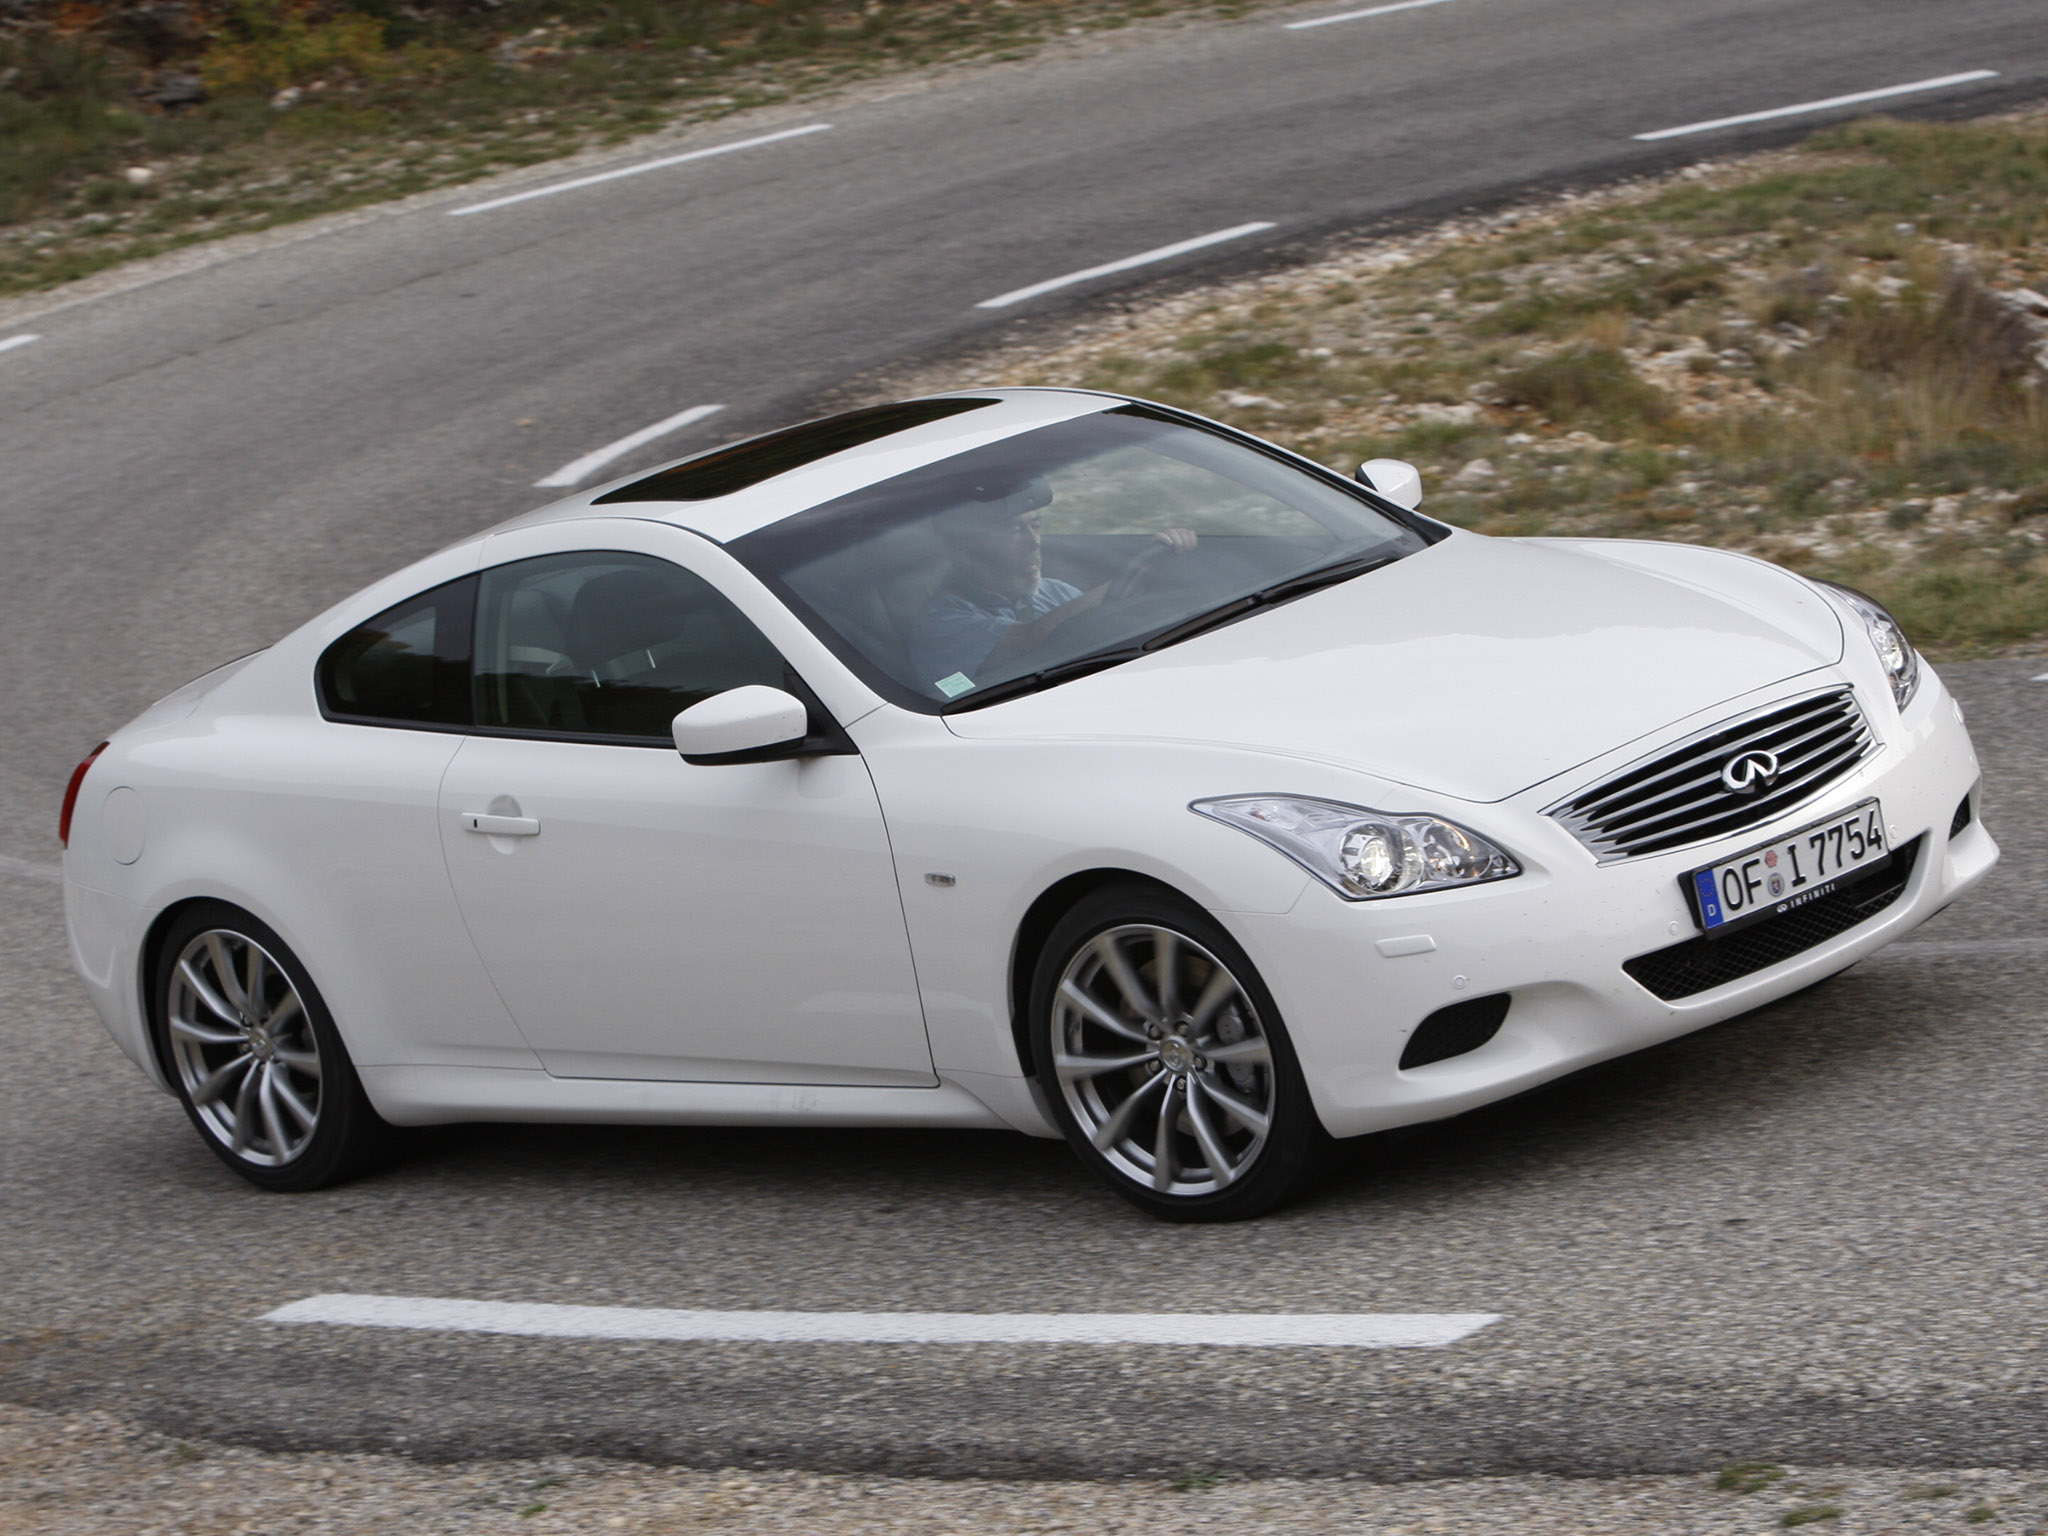 infiniti g37 s coupe 2010 infiniti g37 s coupe 2010 photo 32 car in pictures car photo gallery. Black Bedroom Furniture Sets. Home Design Ideas